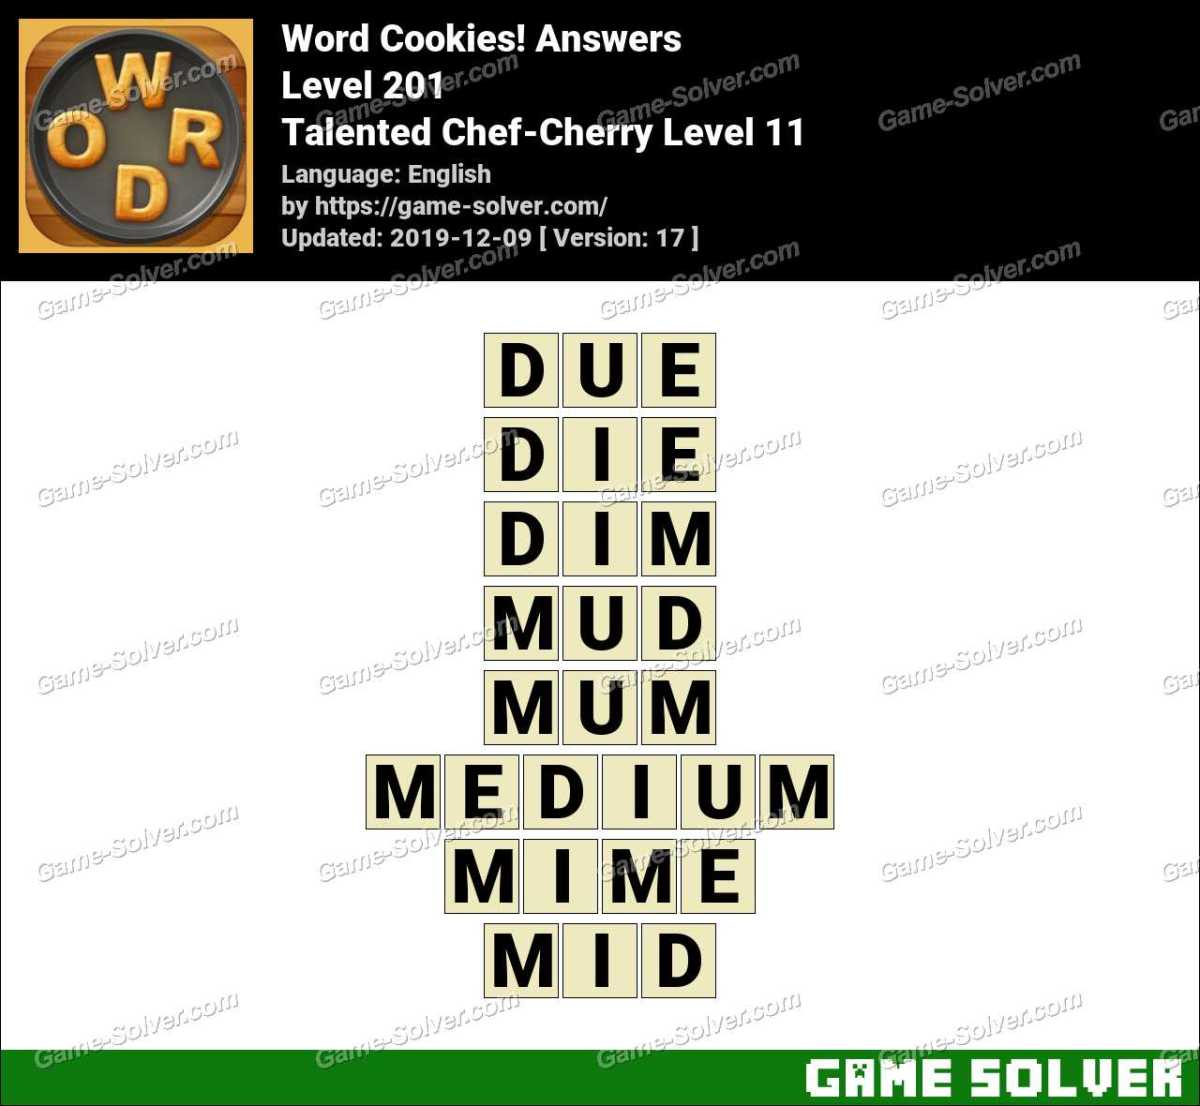 Word Cookies Talented Chef-Cherry Level 11 Answers